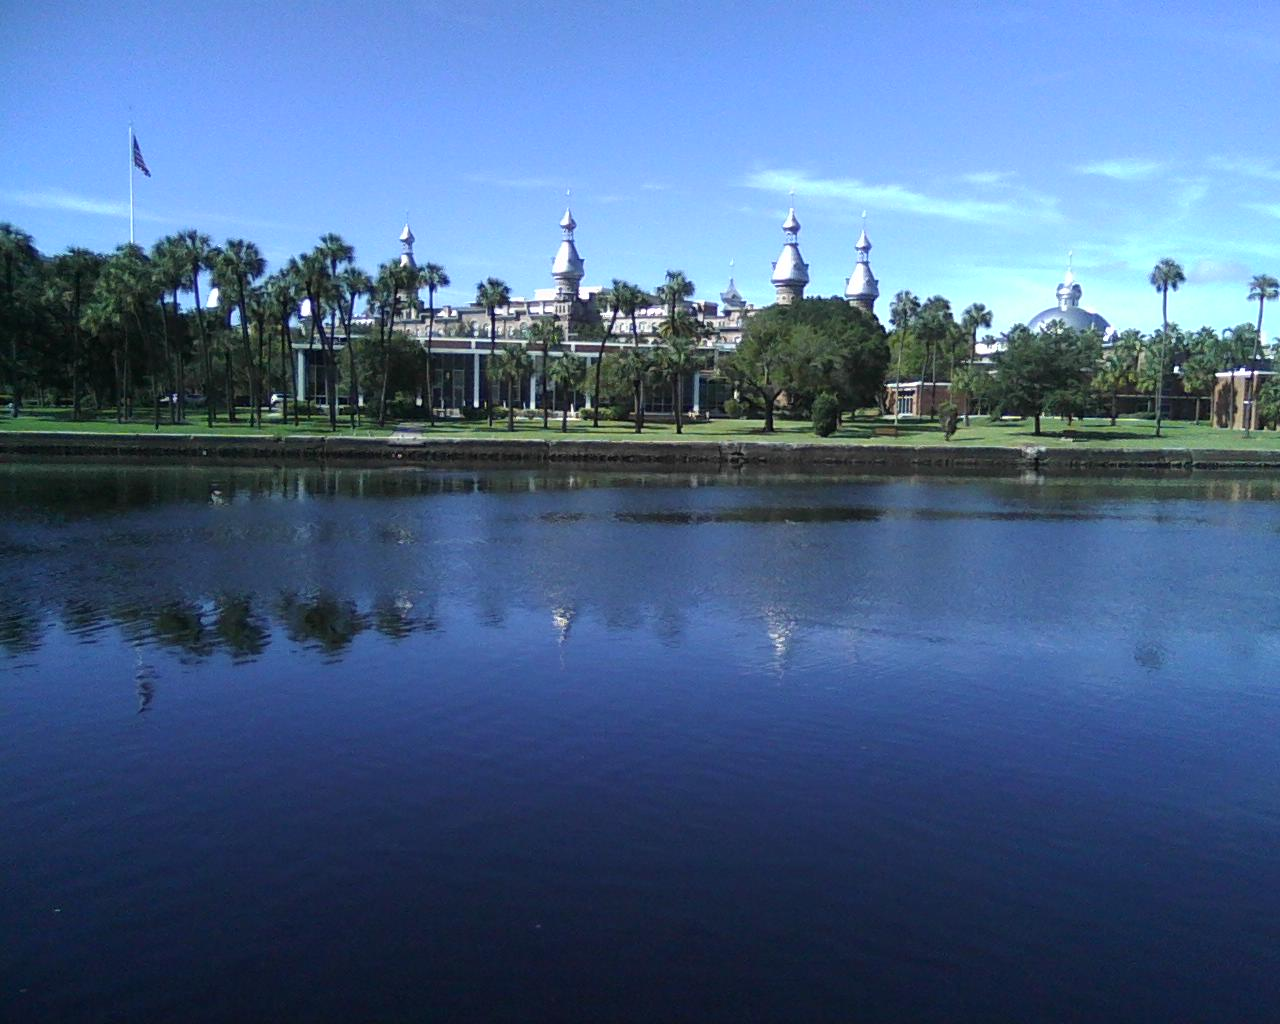 LOOKING TOWARD THE FUTURE: The University of Tampa's Plant Hall as seen across Hillsborough River from Curtis Hixon Waterfront Park.